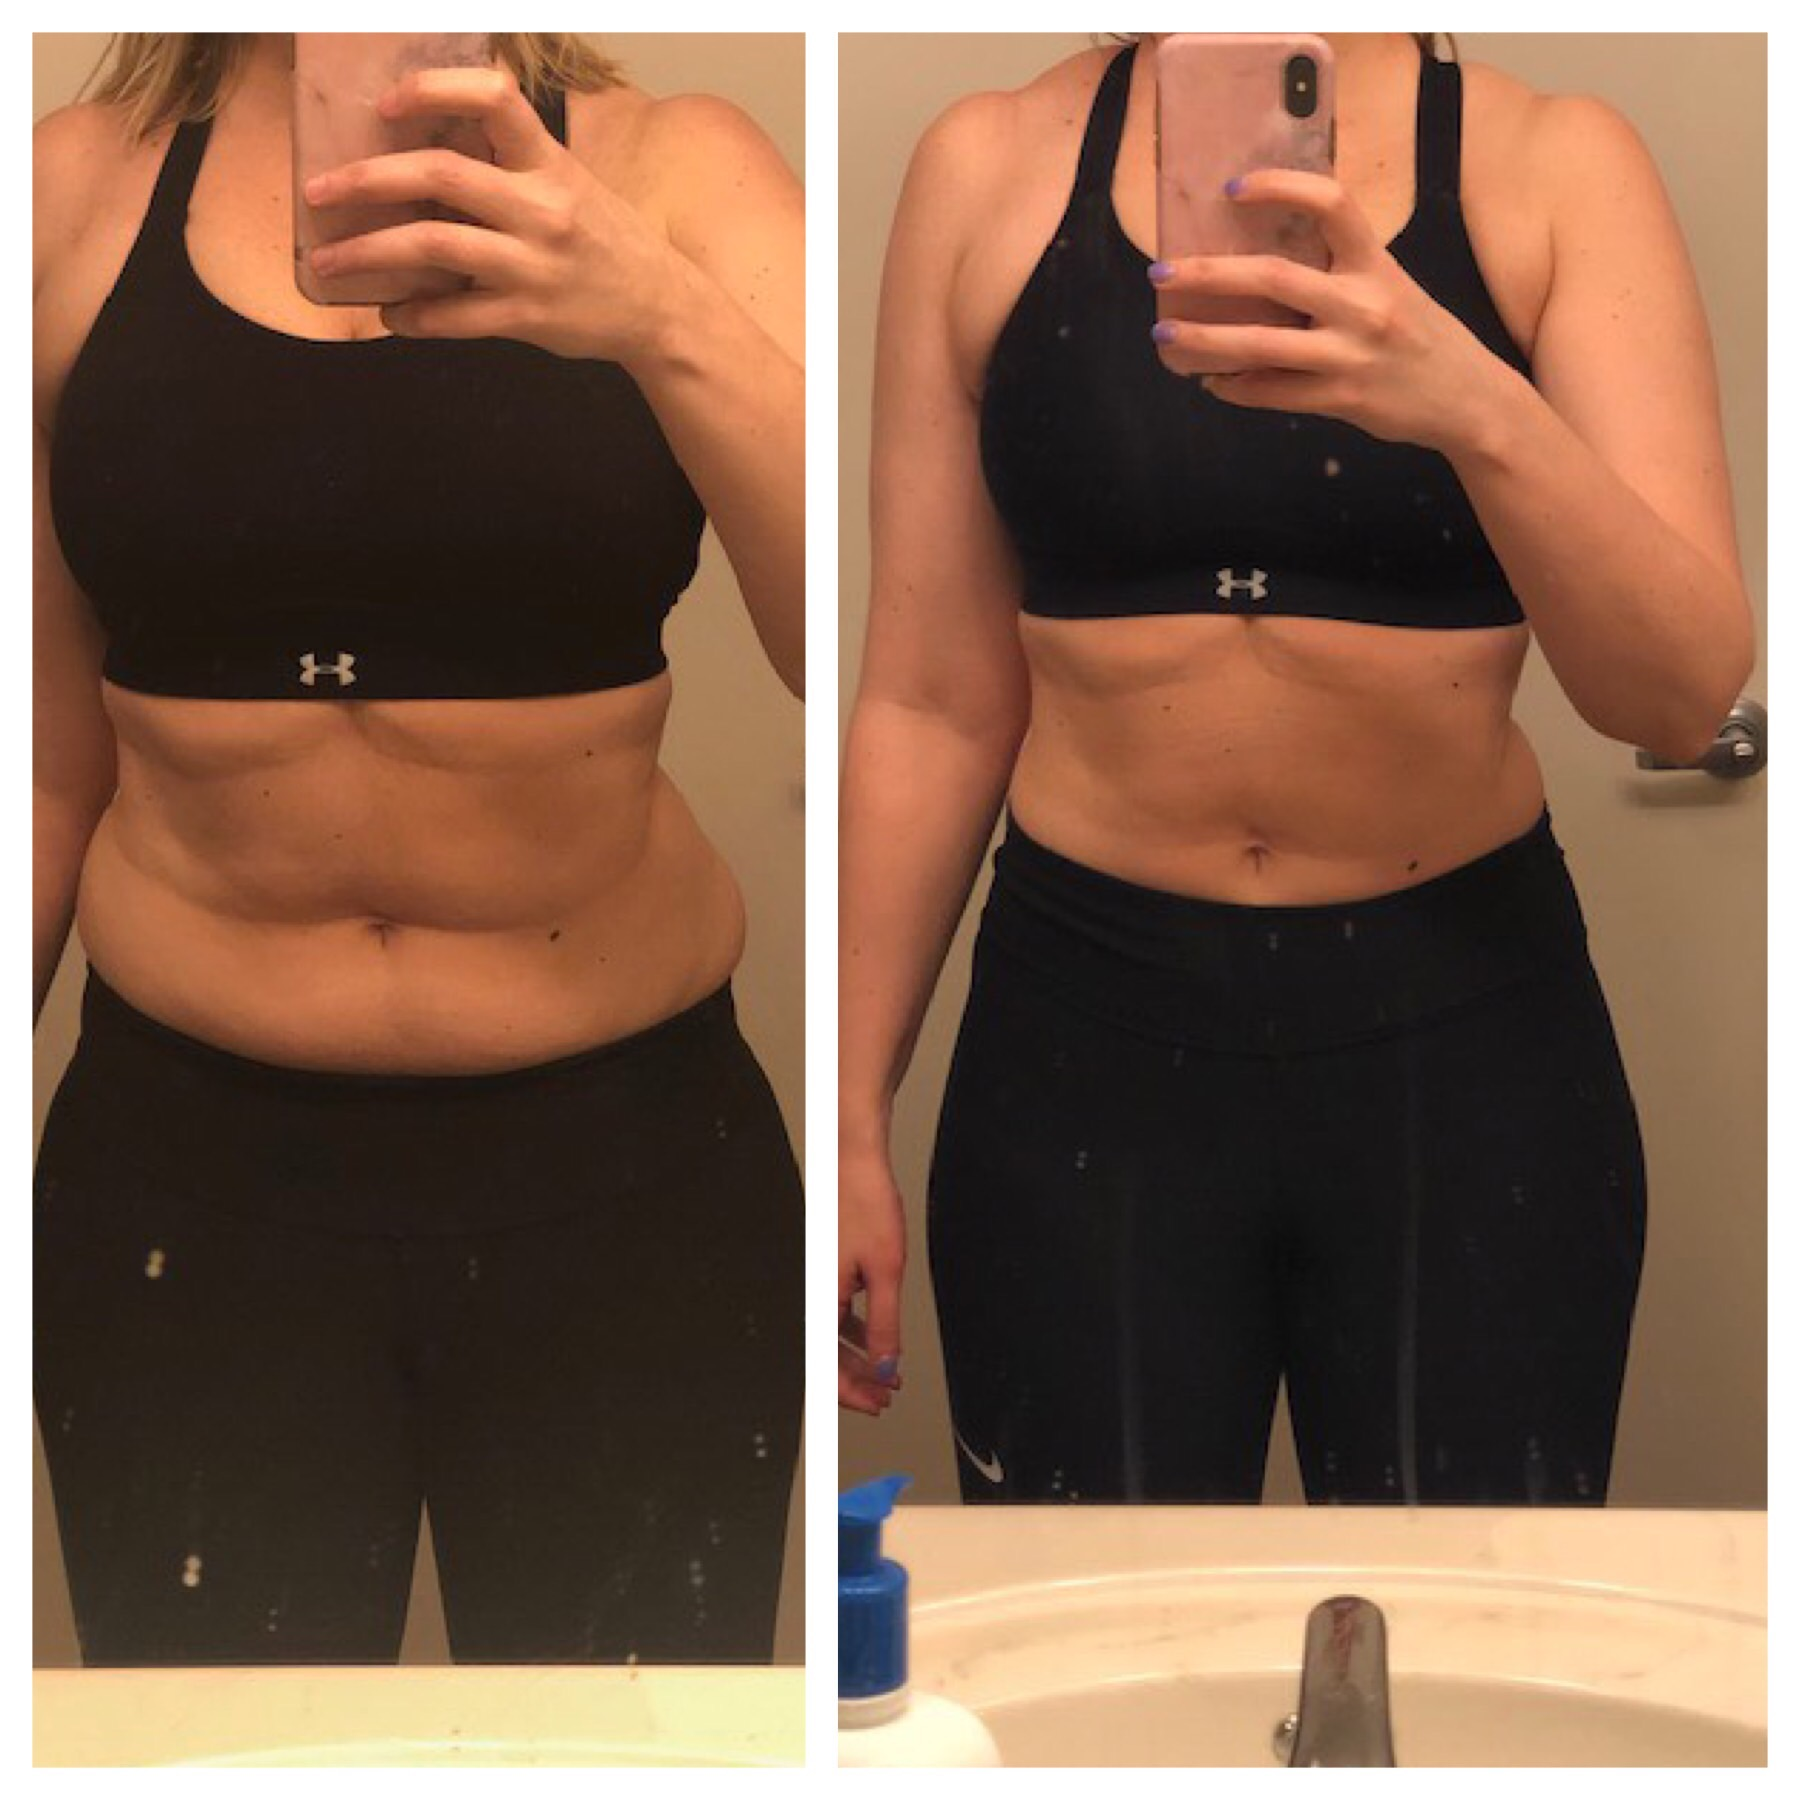 Michelle improved her relationship with food, fueled her workouts, changed to a more supportive job and realized amazing physical and emotional results!